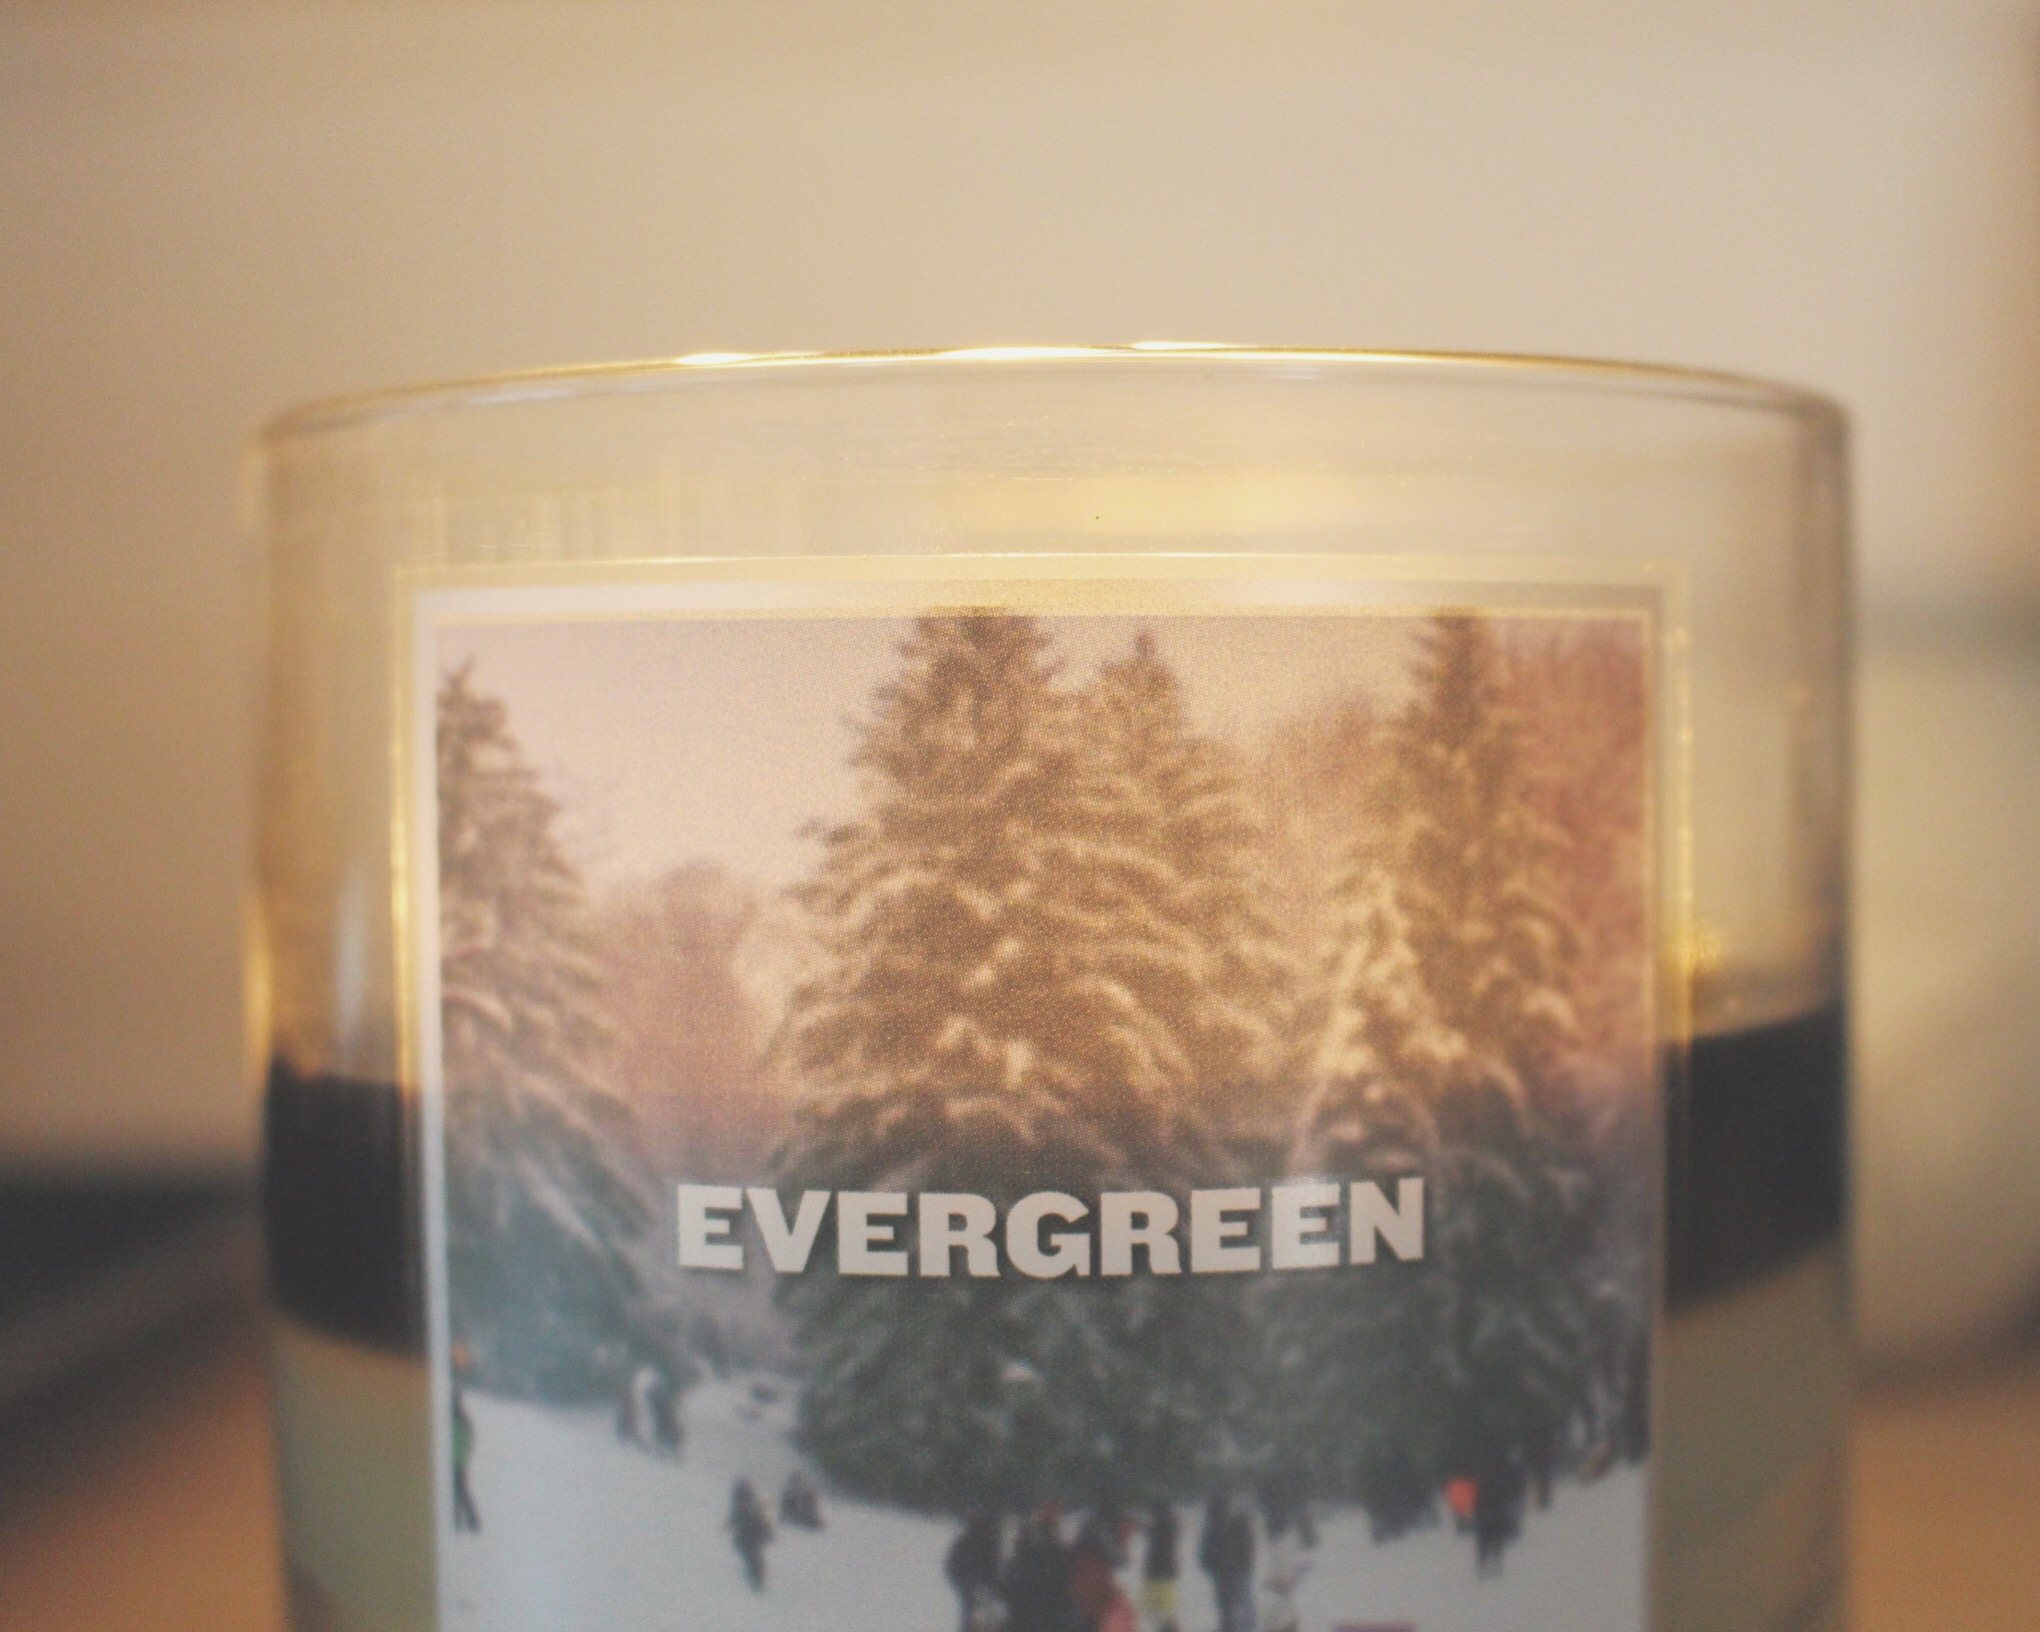 Hey there, favorite candle